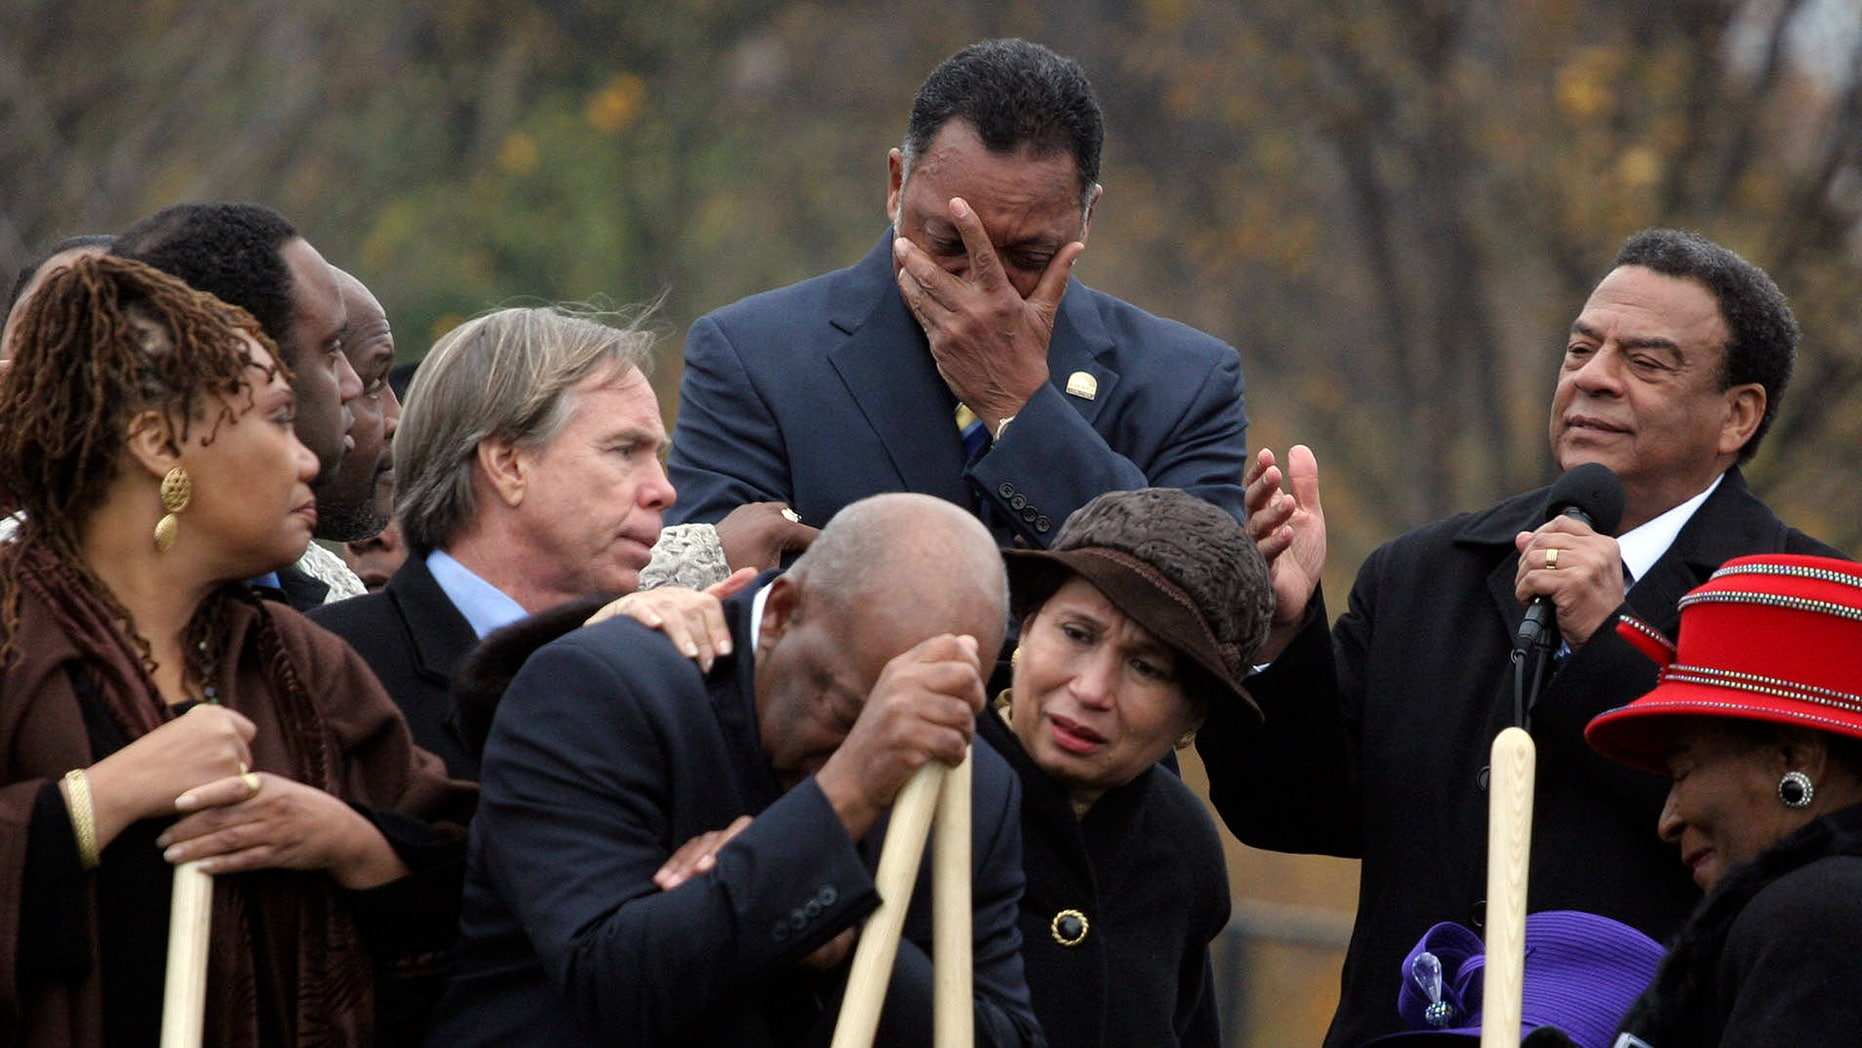 November 13, 2006: Rev. Jesse Jackson, top center, Rep. John Lewis, D-Ga., leaning on shovel, becoming emotional as Amb. Andrew Young, top right, speaks about the significance of the late Dr. Martin Luther King Jr., during the breaking ground for the Martin Luther King Memorial on the National Mall in Washington. This week, the trio, along with the Rev. Joseph Lowery and many other lesser known soldiers who worked alongside King in the struggle for justice and equality will come together again, to dedicate the monument built in his honor.